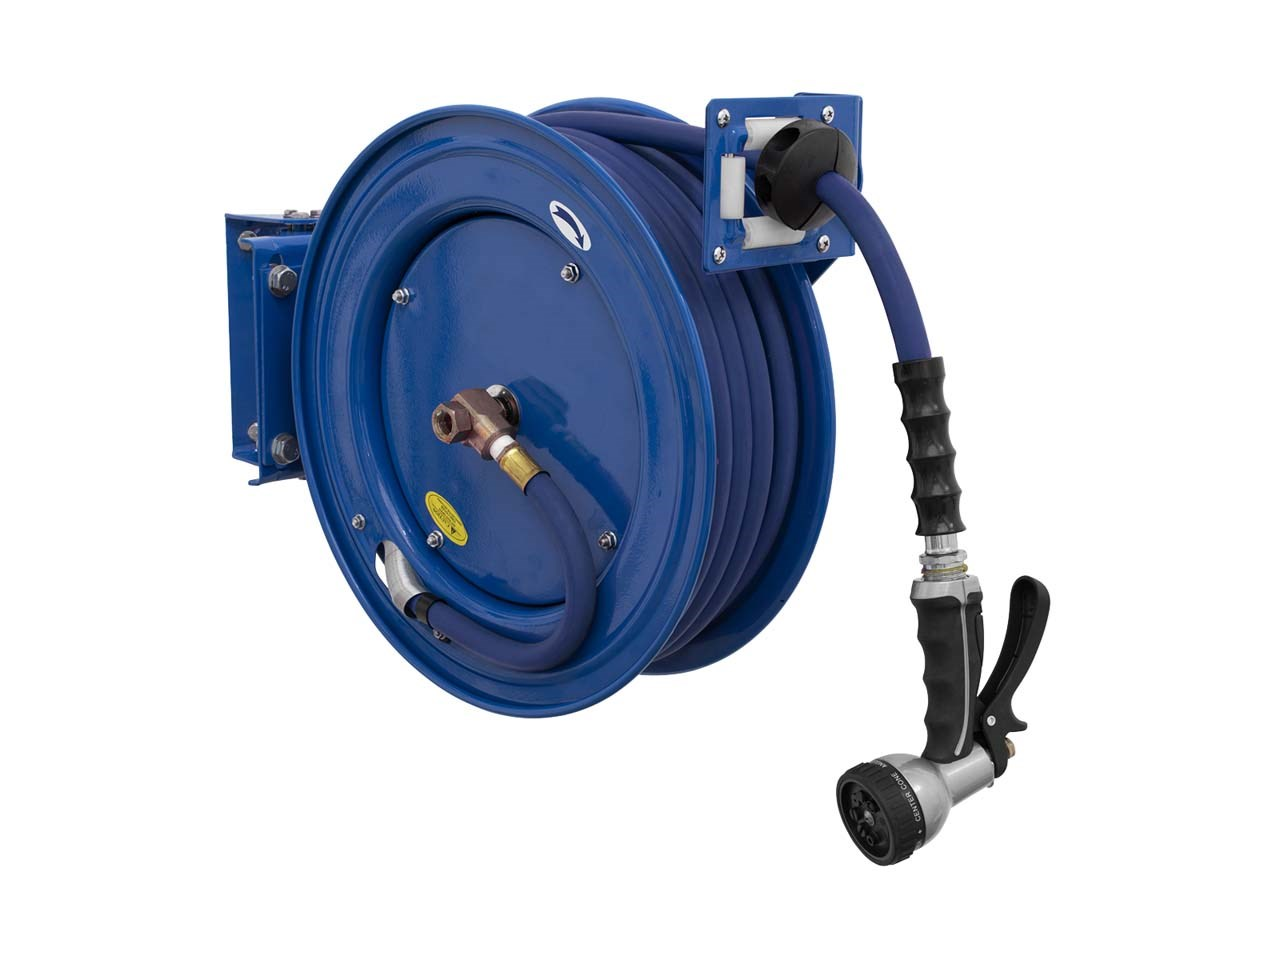 Sealey Whr1512 15m 13mm Heavy Duty Retractable Water Hose